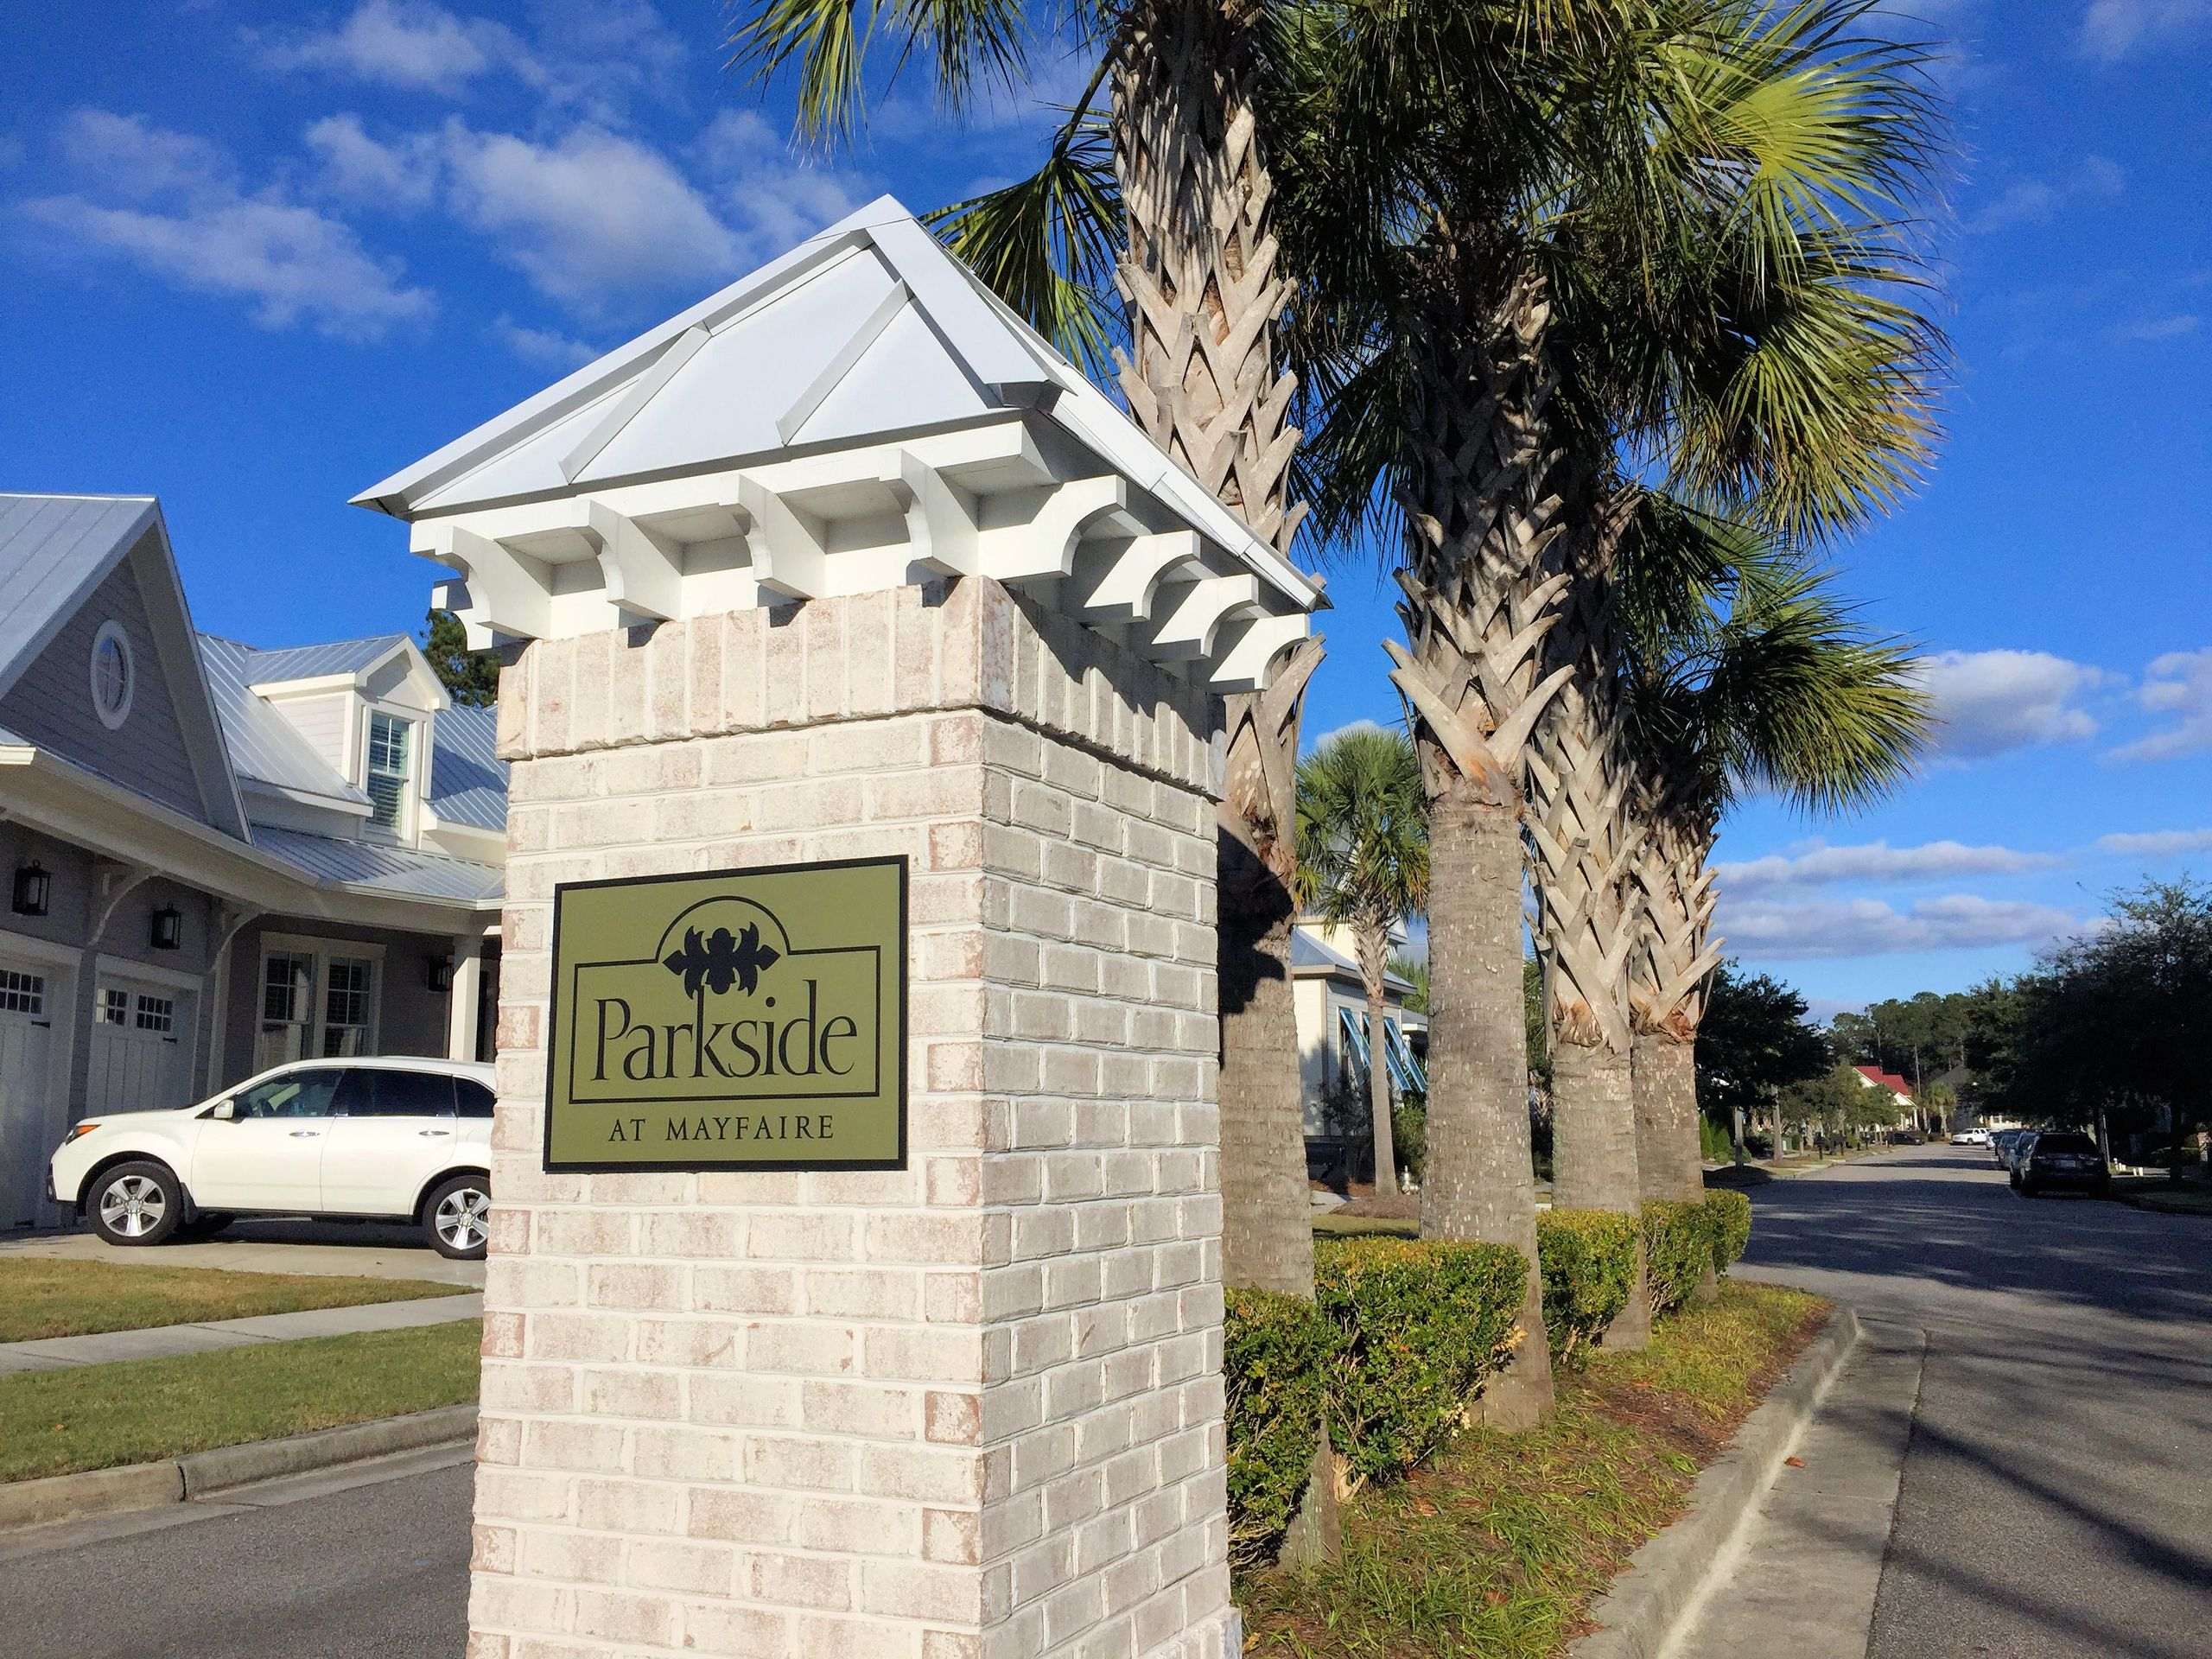 Parkside at Mayfaire Homes for Sale in Wilmington, NC